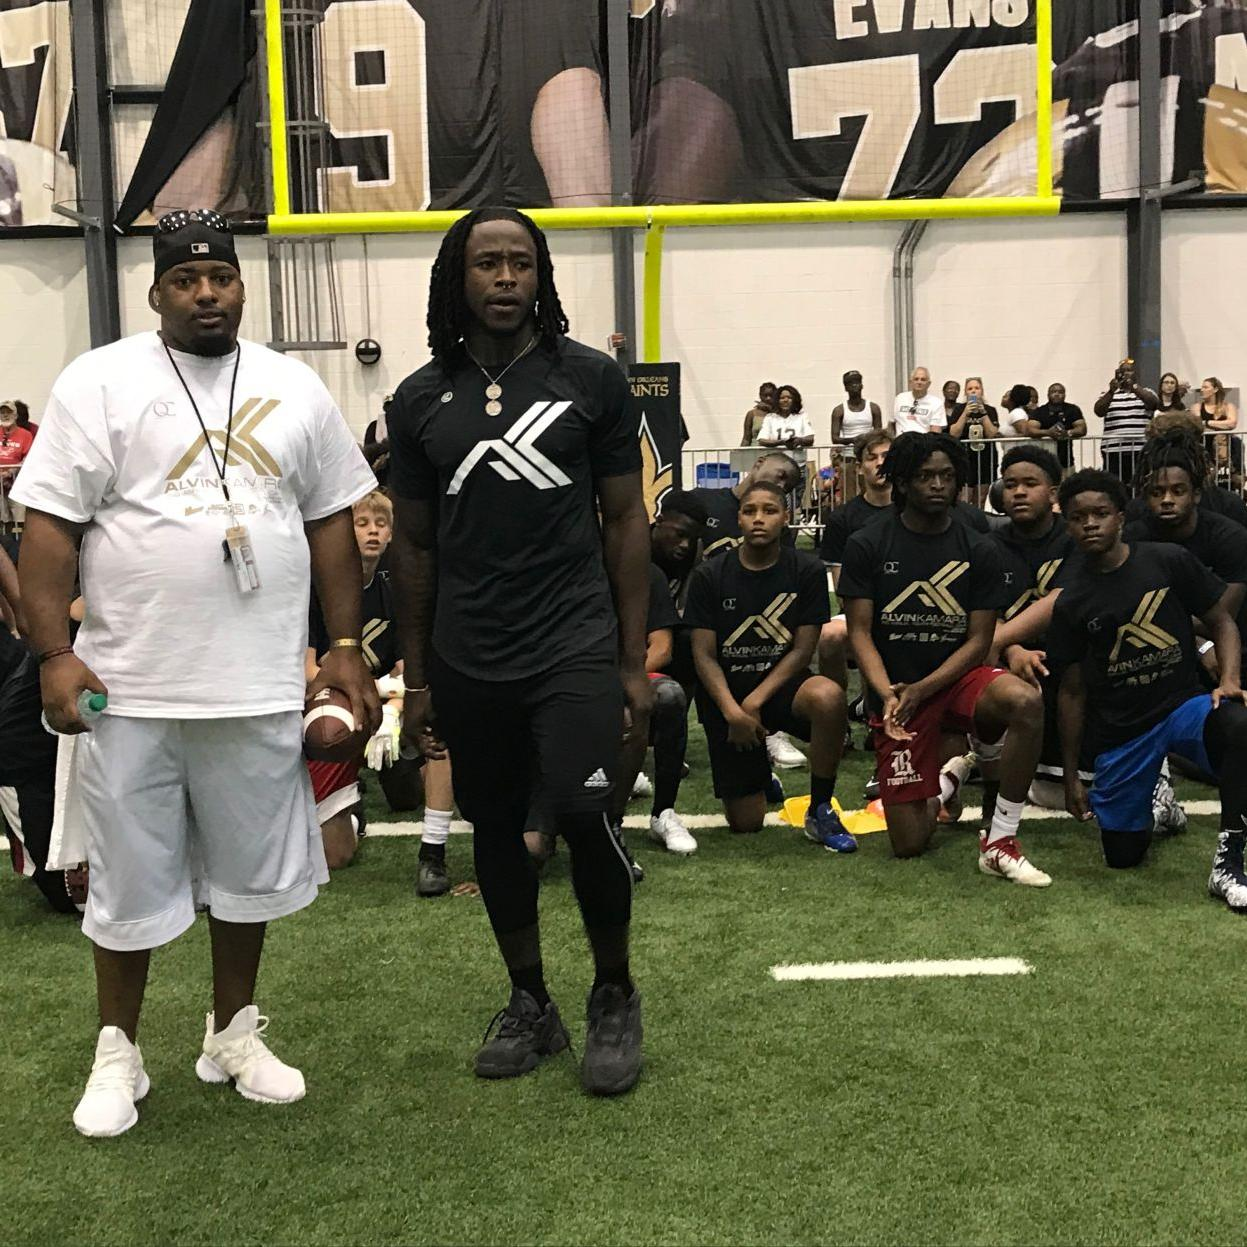 finest selection b1a19 ccb79 Alvin Kamara hosts hundreds of kids at 2nd annual football ...